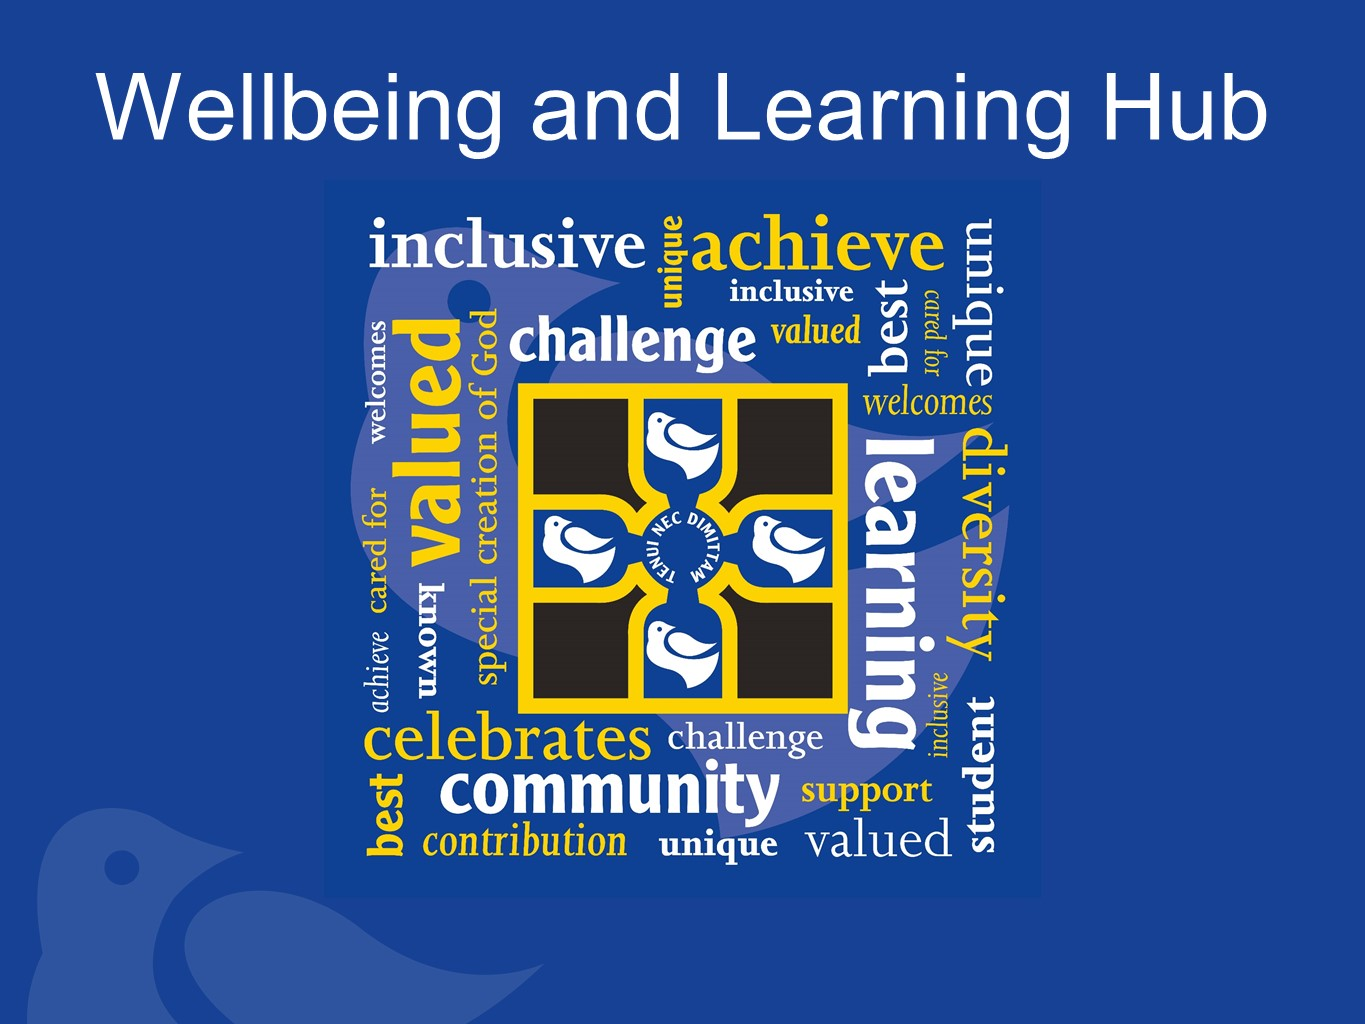 Wellbeing and Learning Hub